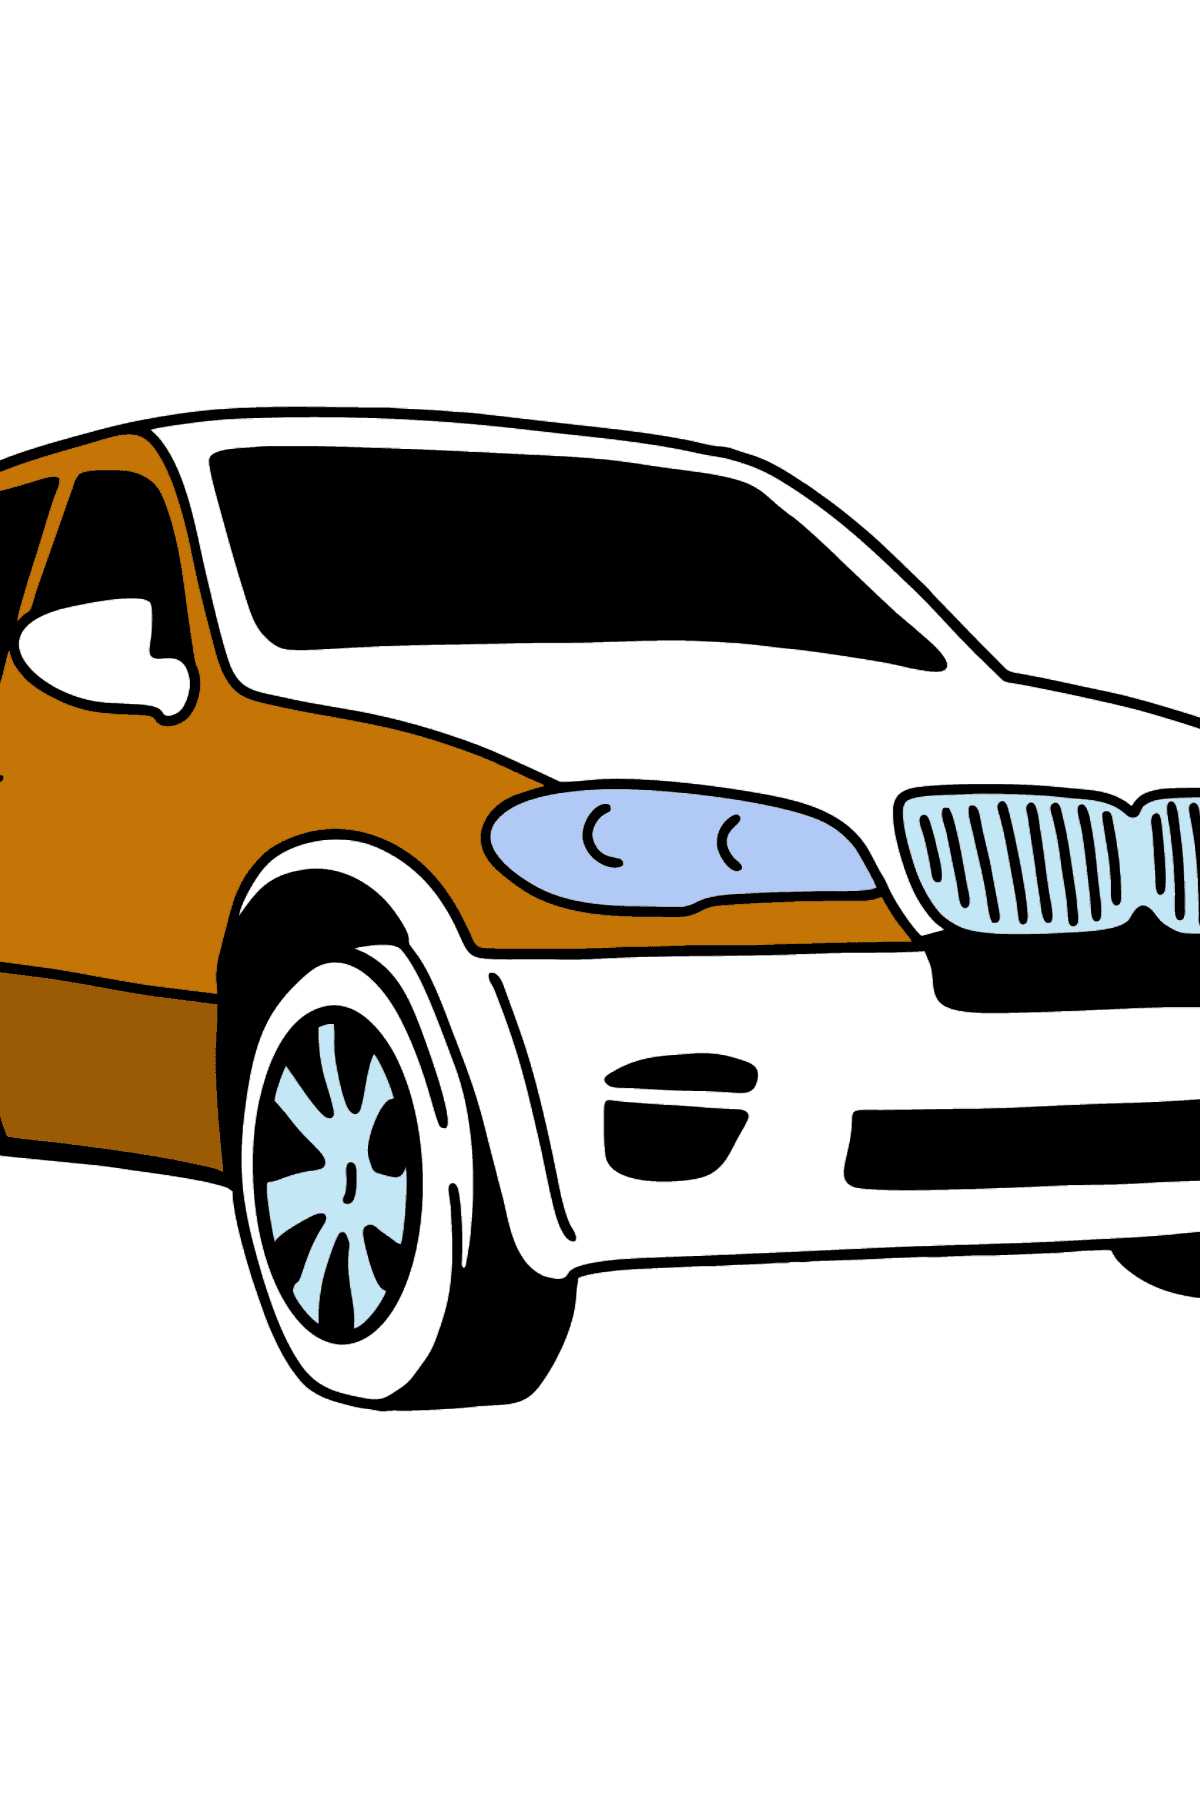 BMW X6 Crossover coloring page - Coloring Pages for Kids